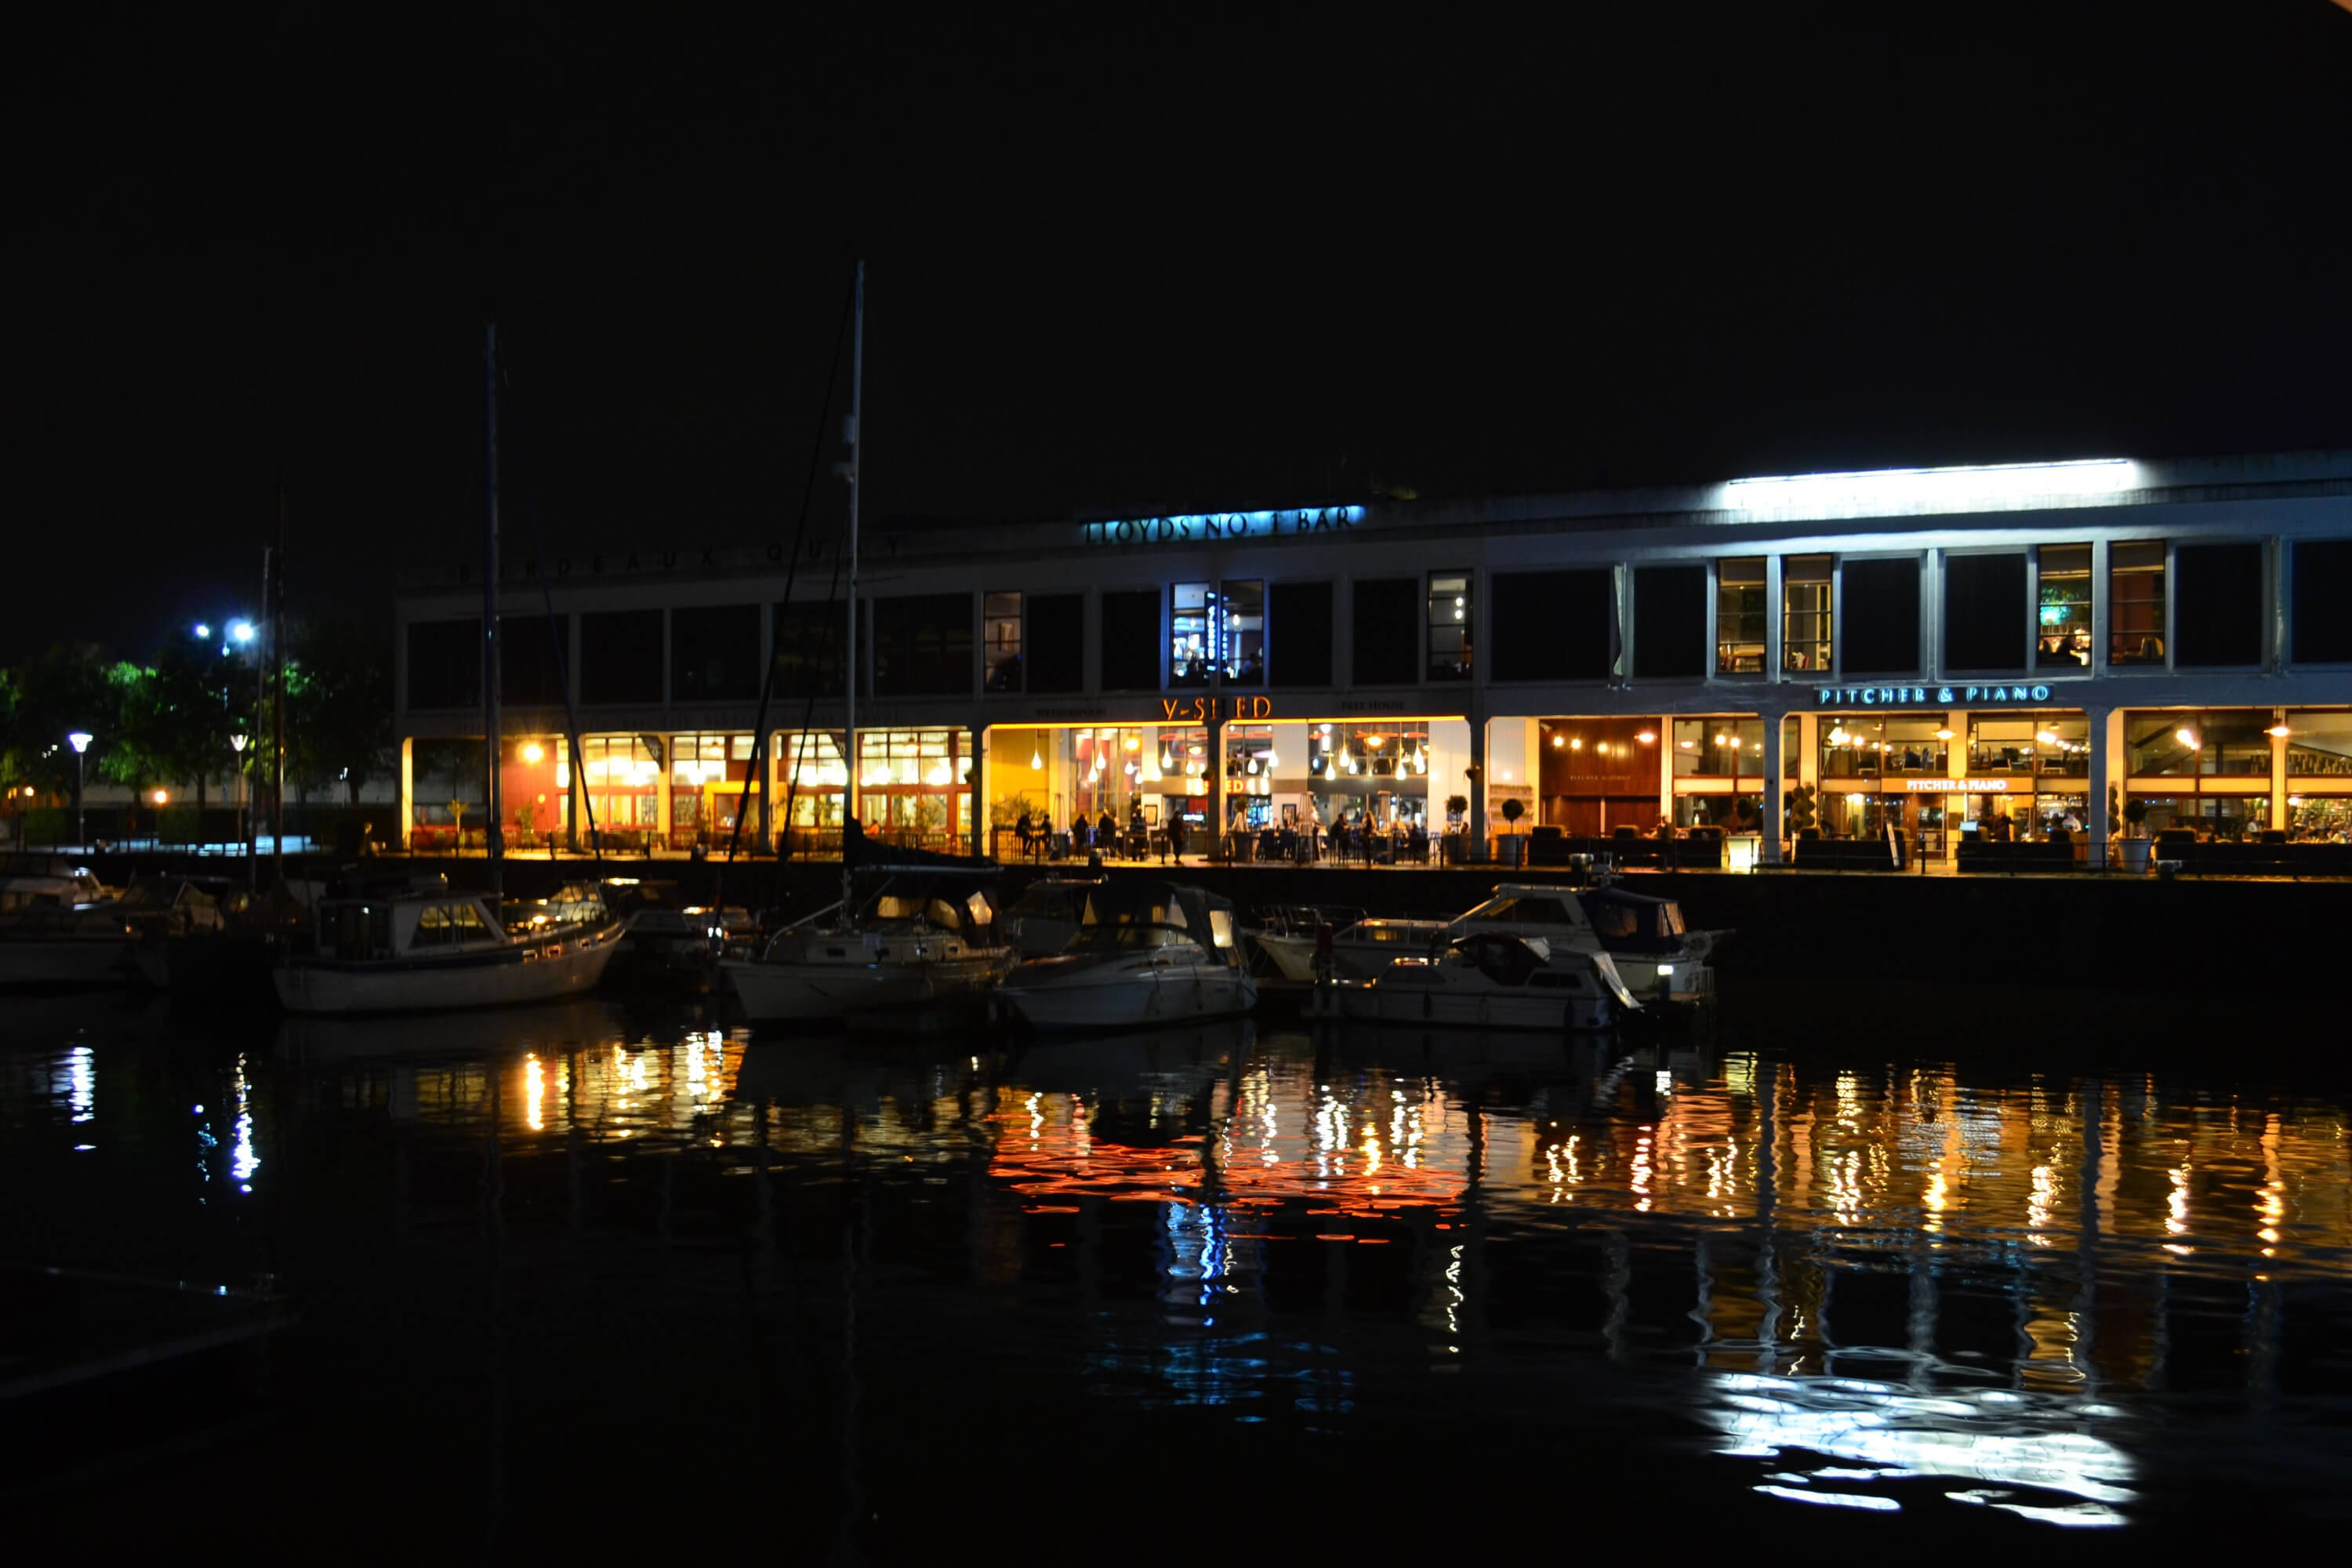 Bristol City Waterfront by night.